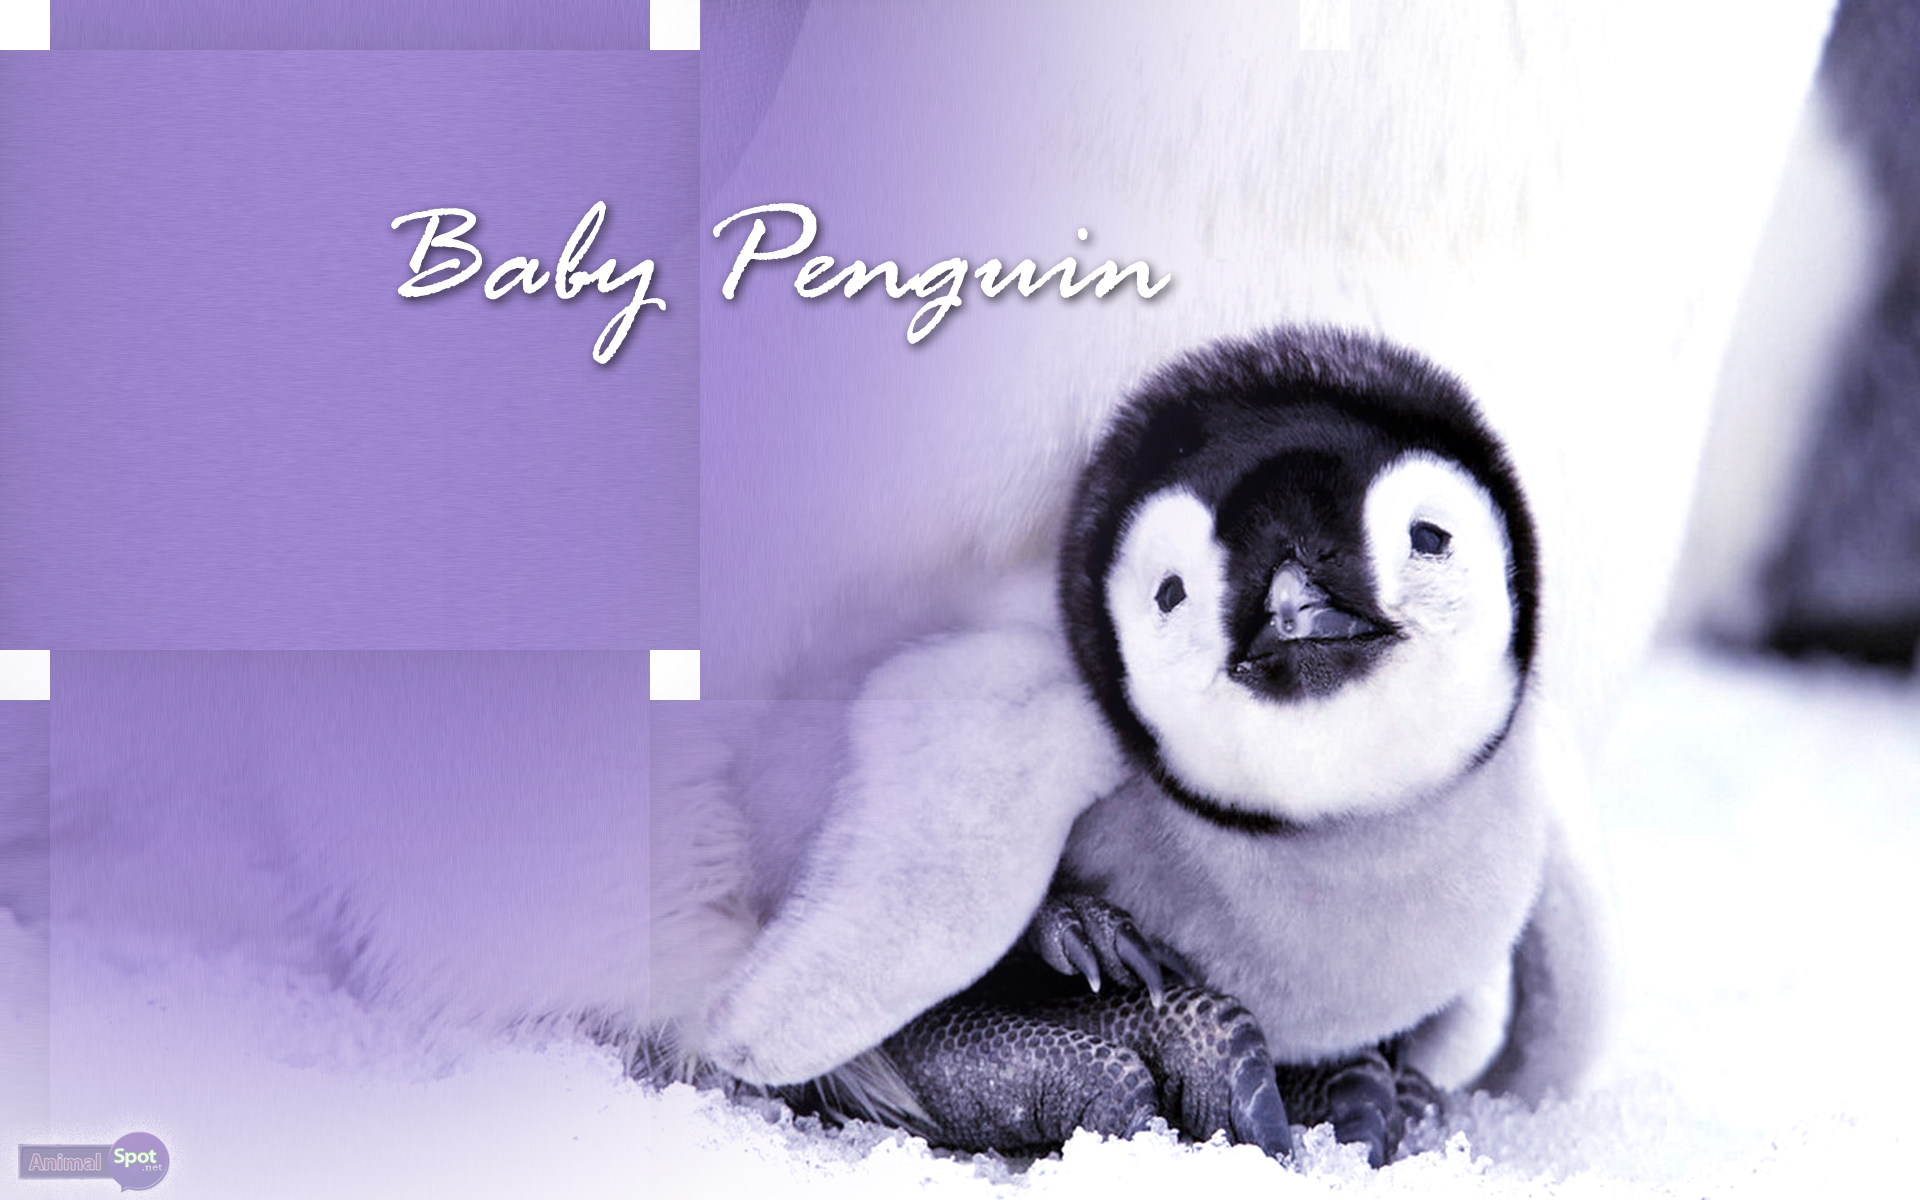 Best Penguin Wallpapers And Backgrounds Baby Wallpaper